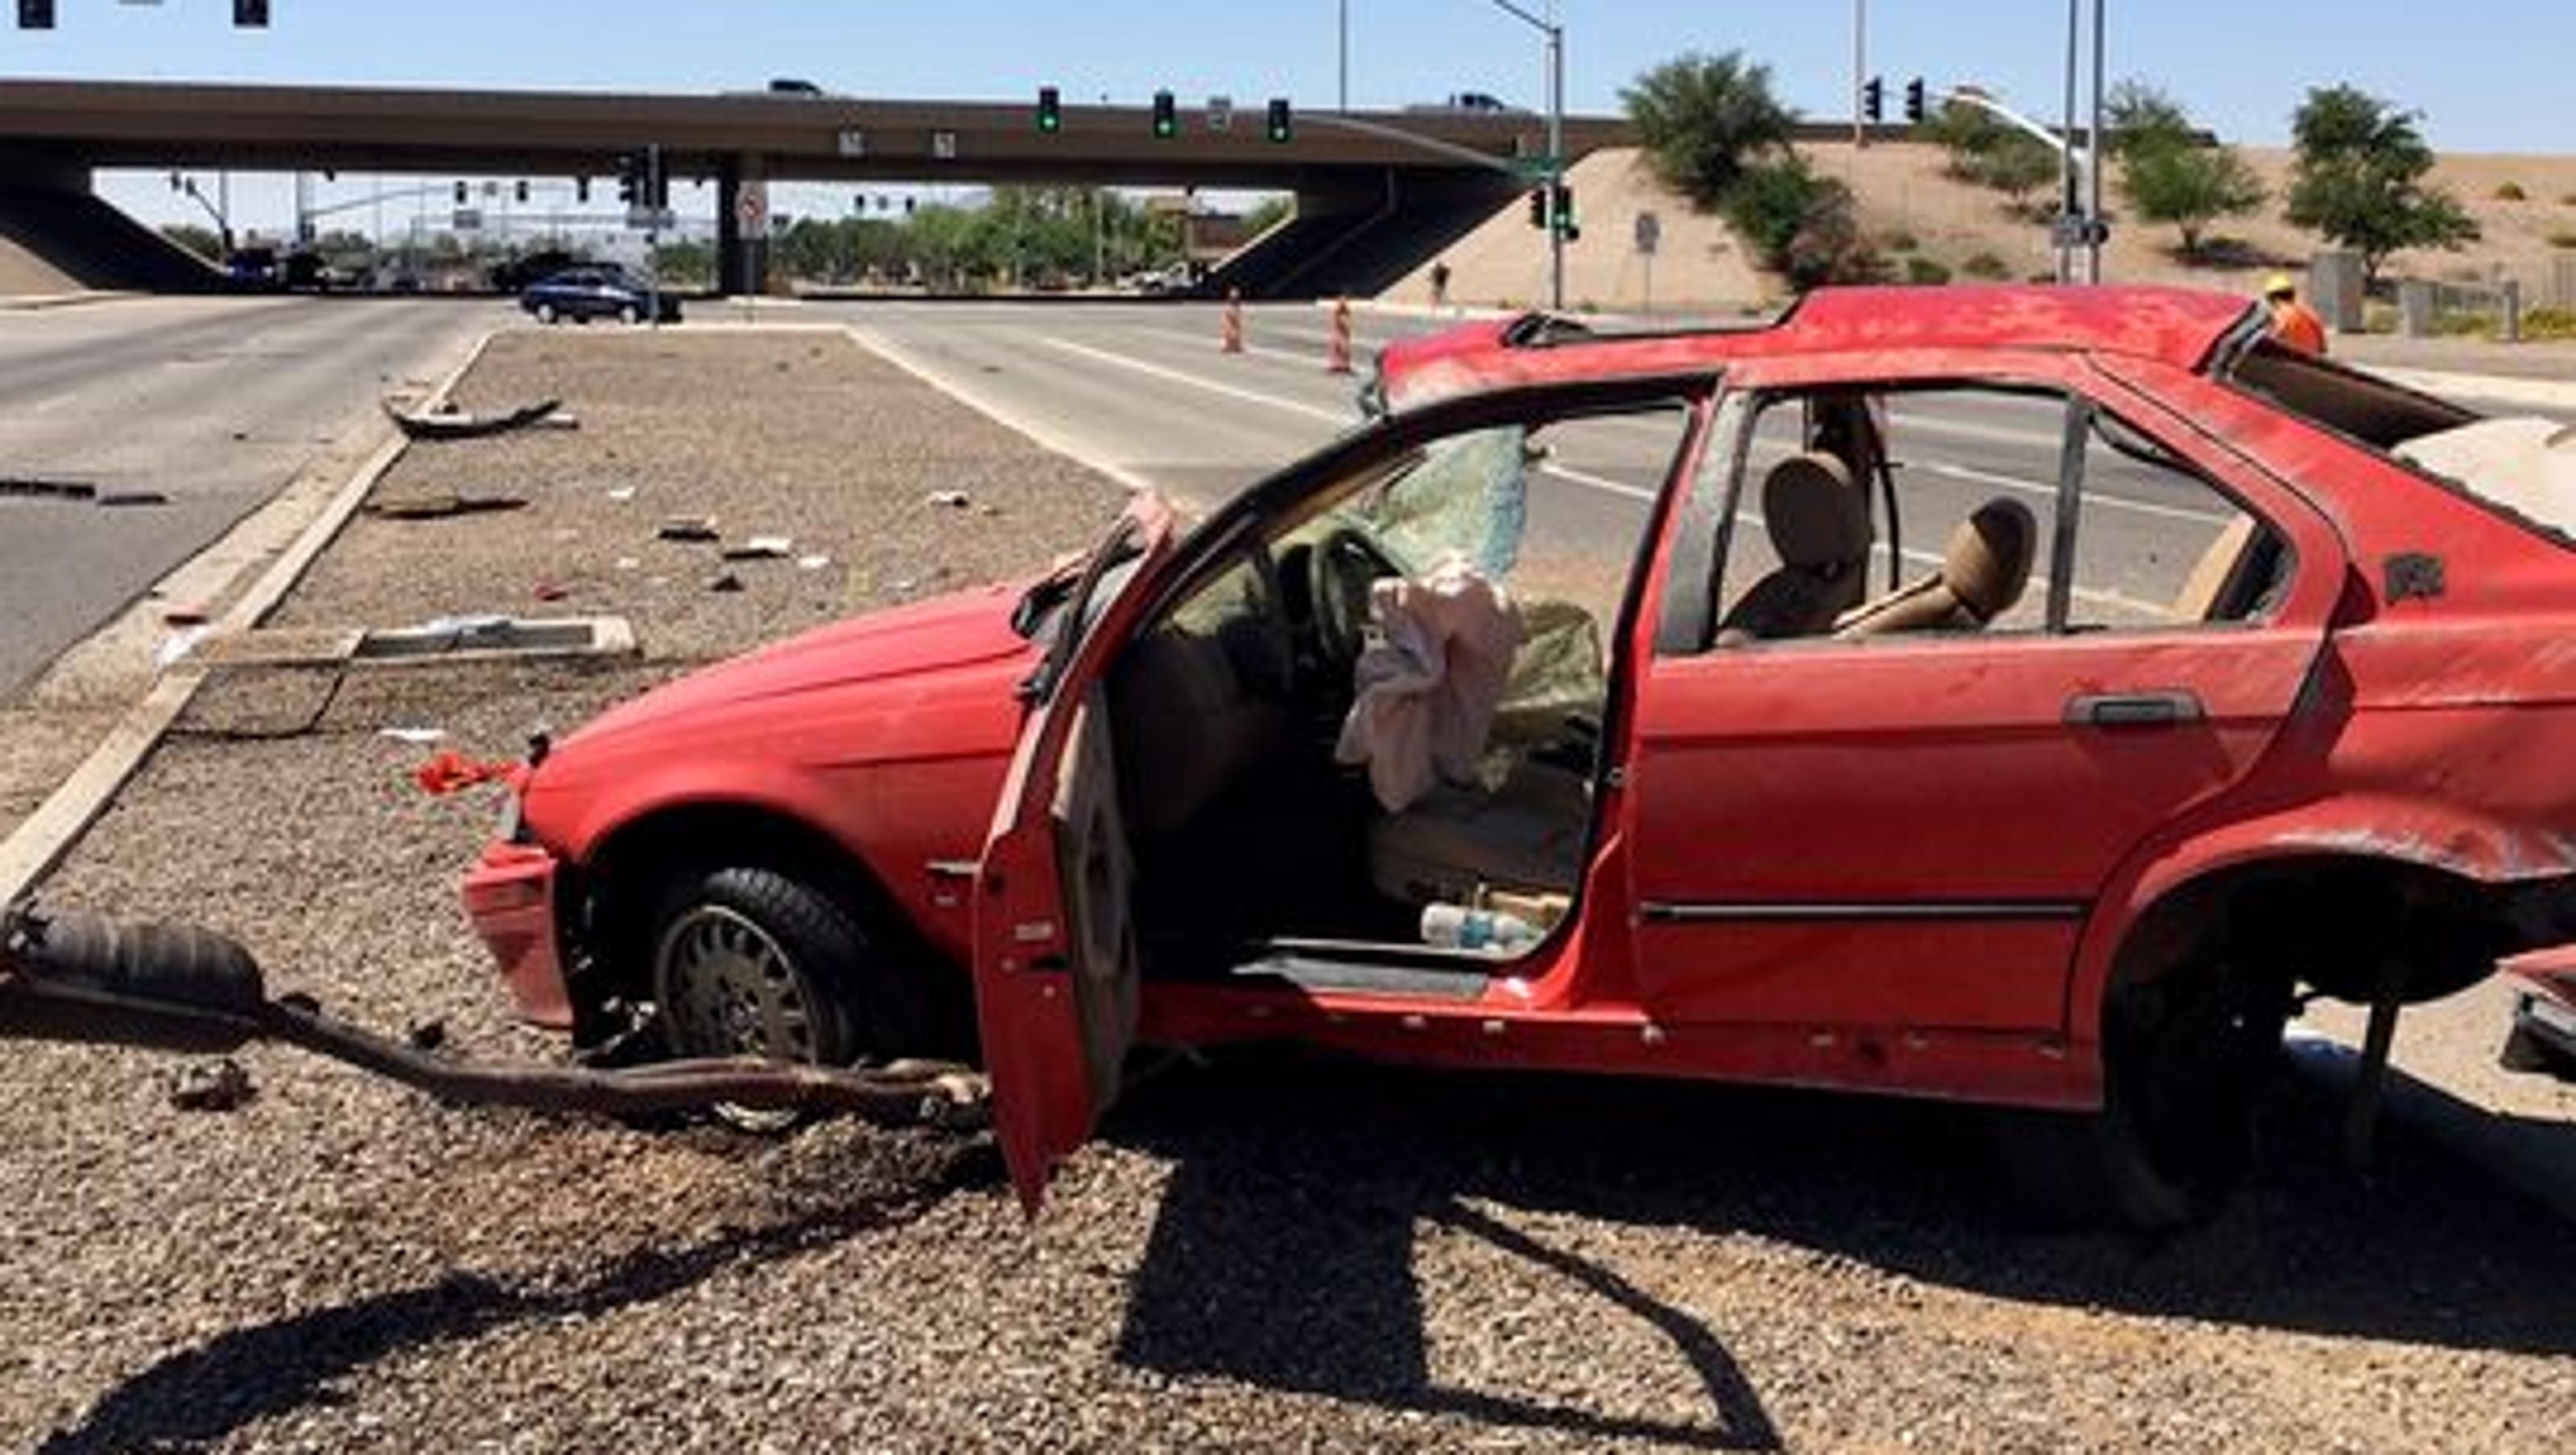 mom of teen hurt in gilbert crash: 'he's never going to be the same'